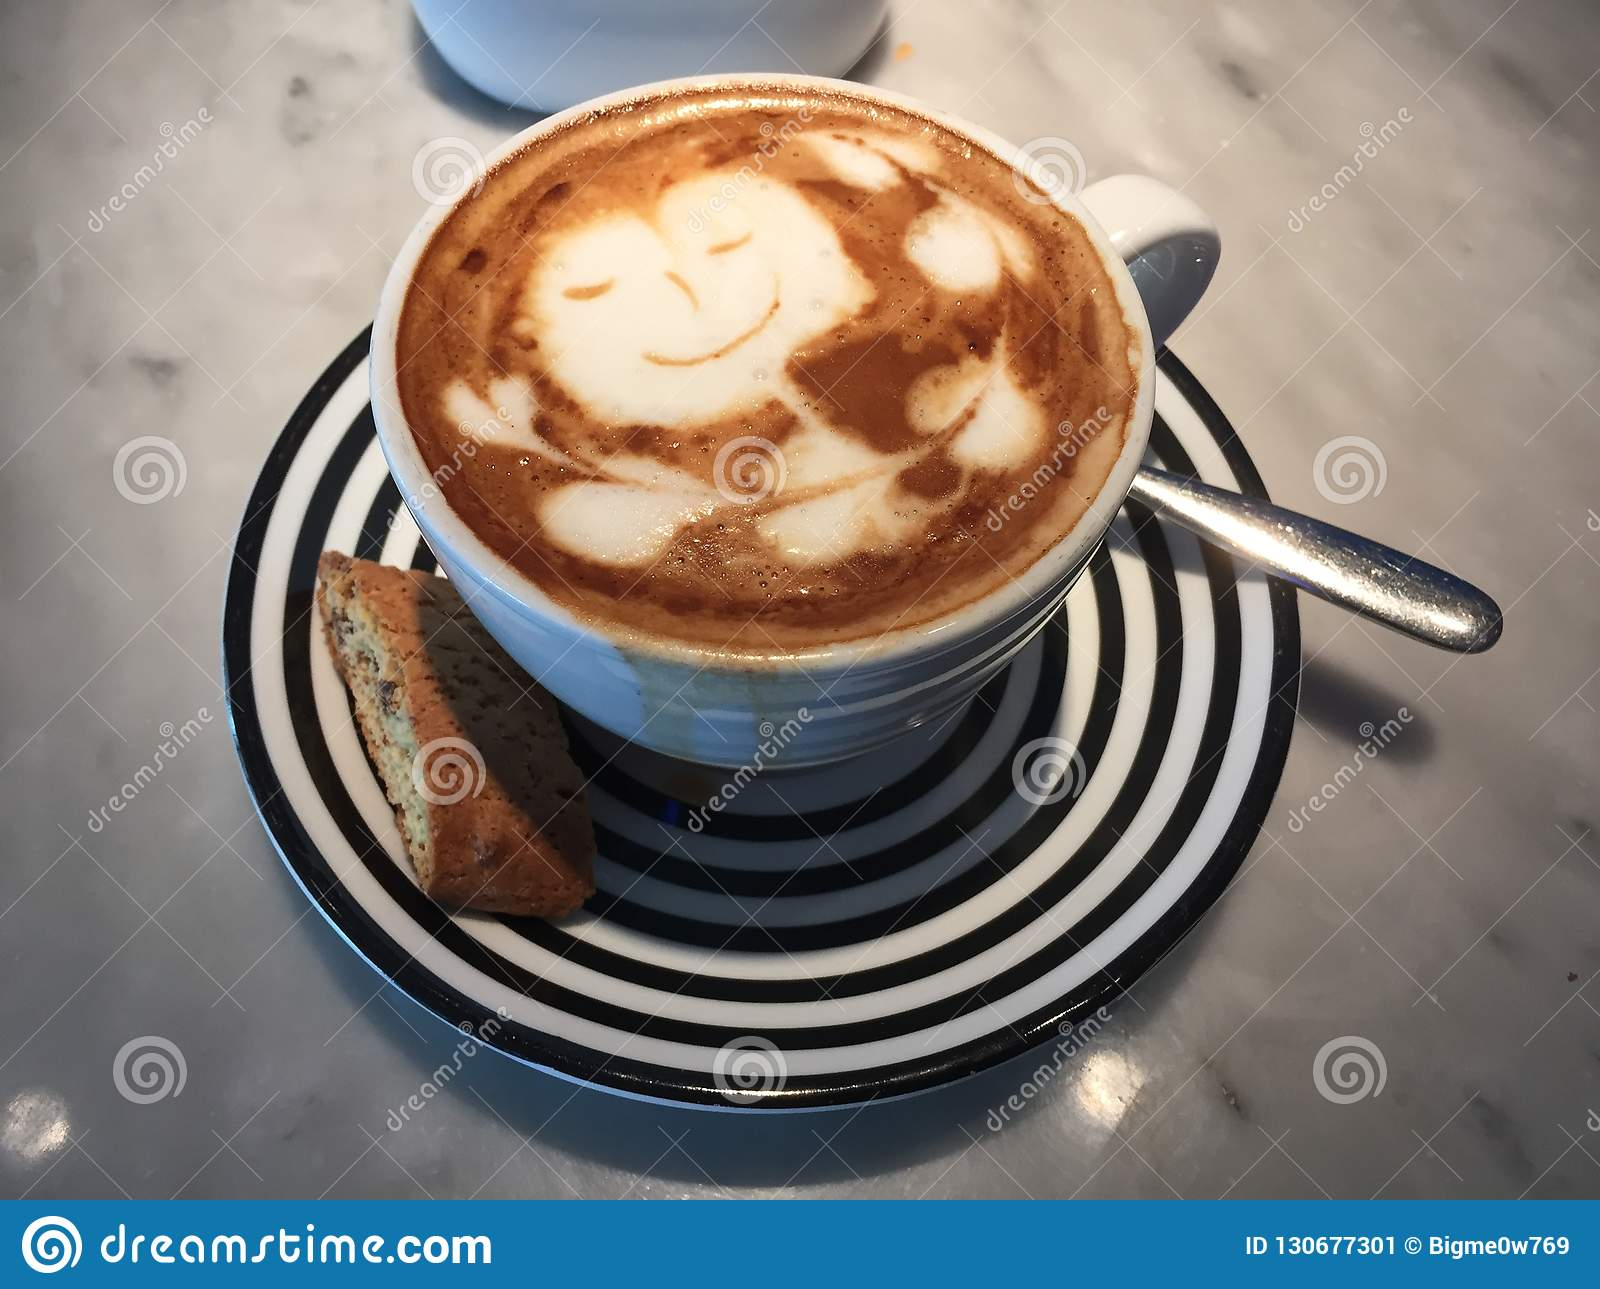 Latte Love For Coffee Lovers Stock Image Image Of